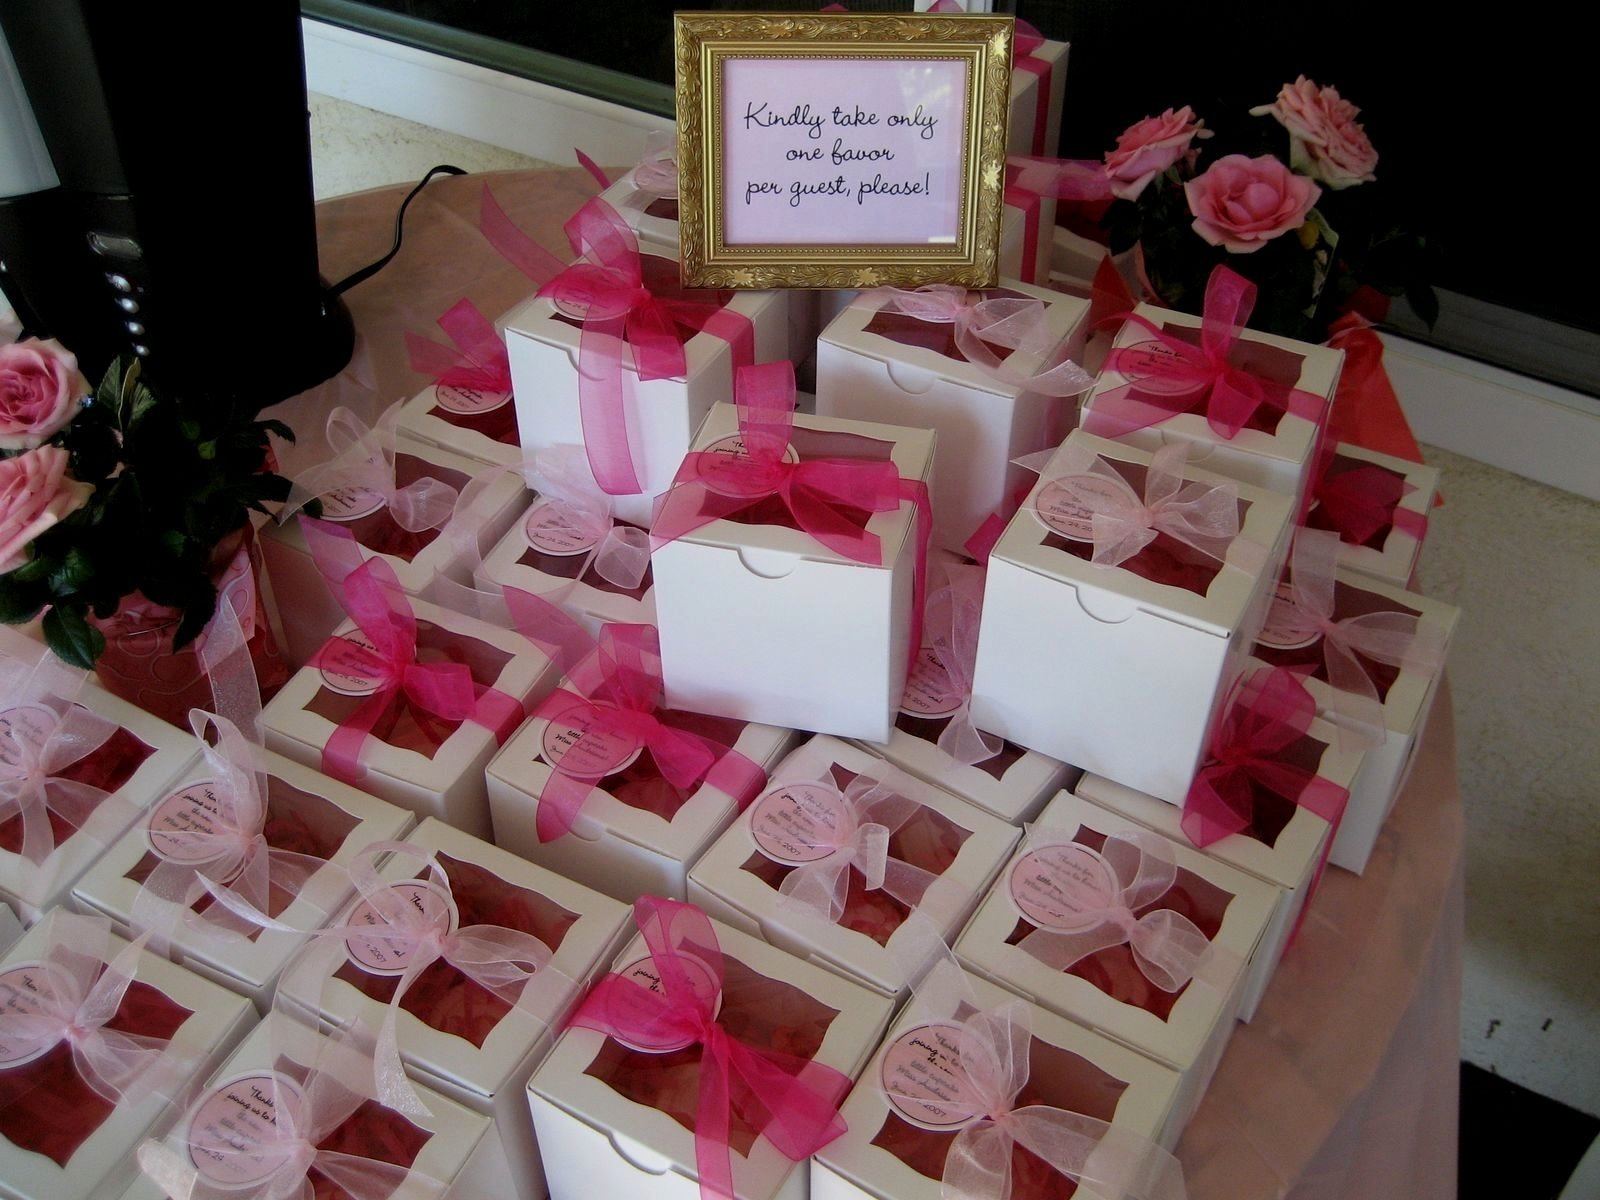 10 Lovable Baby Shower Favors Ideas To Make baby shower baby shower favor ideas for girl baby shower favors 2020